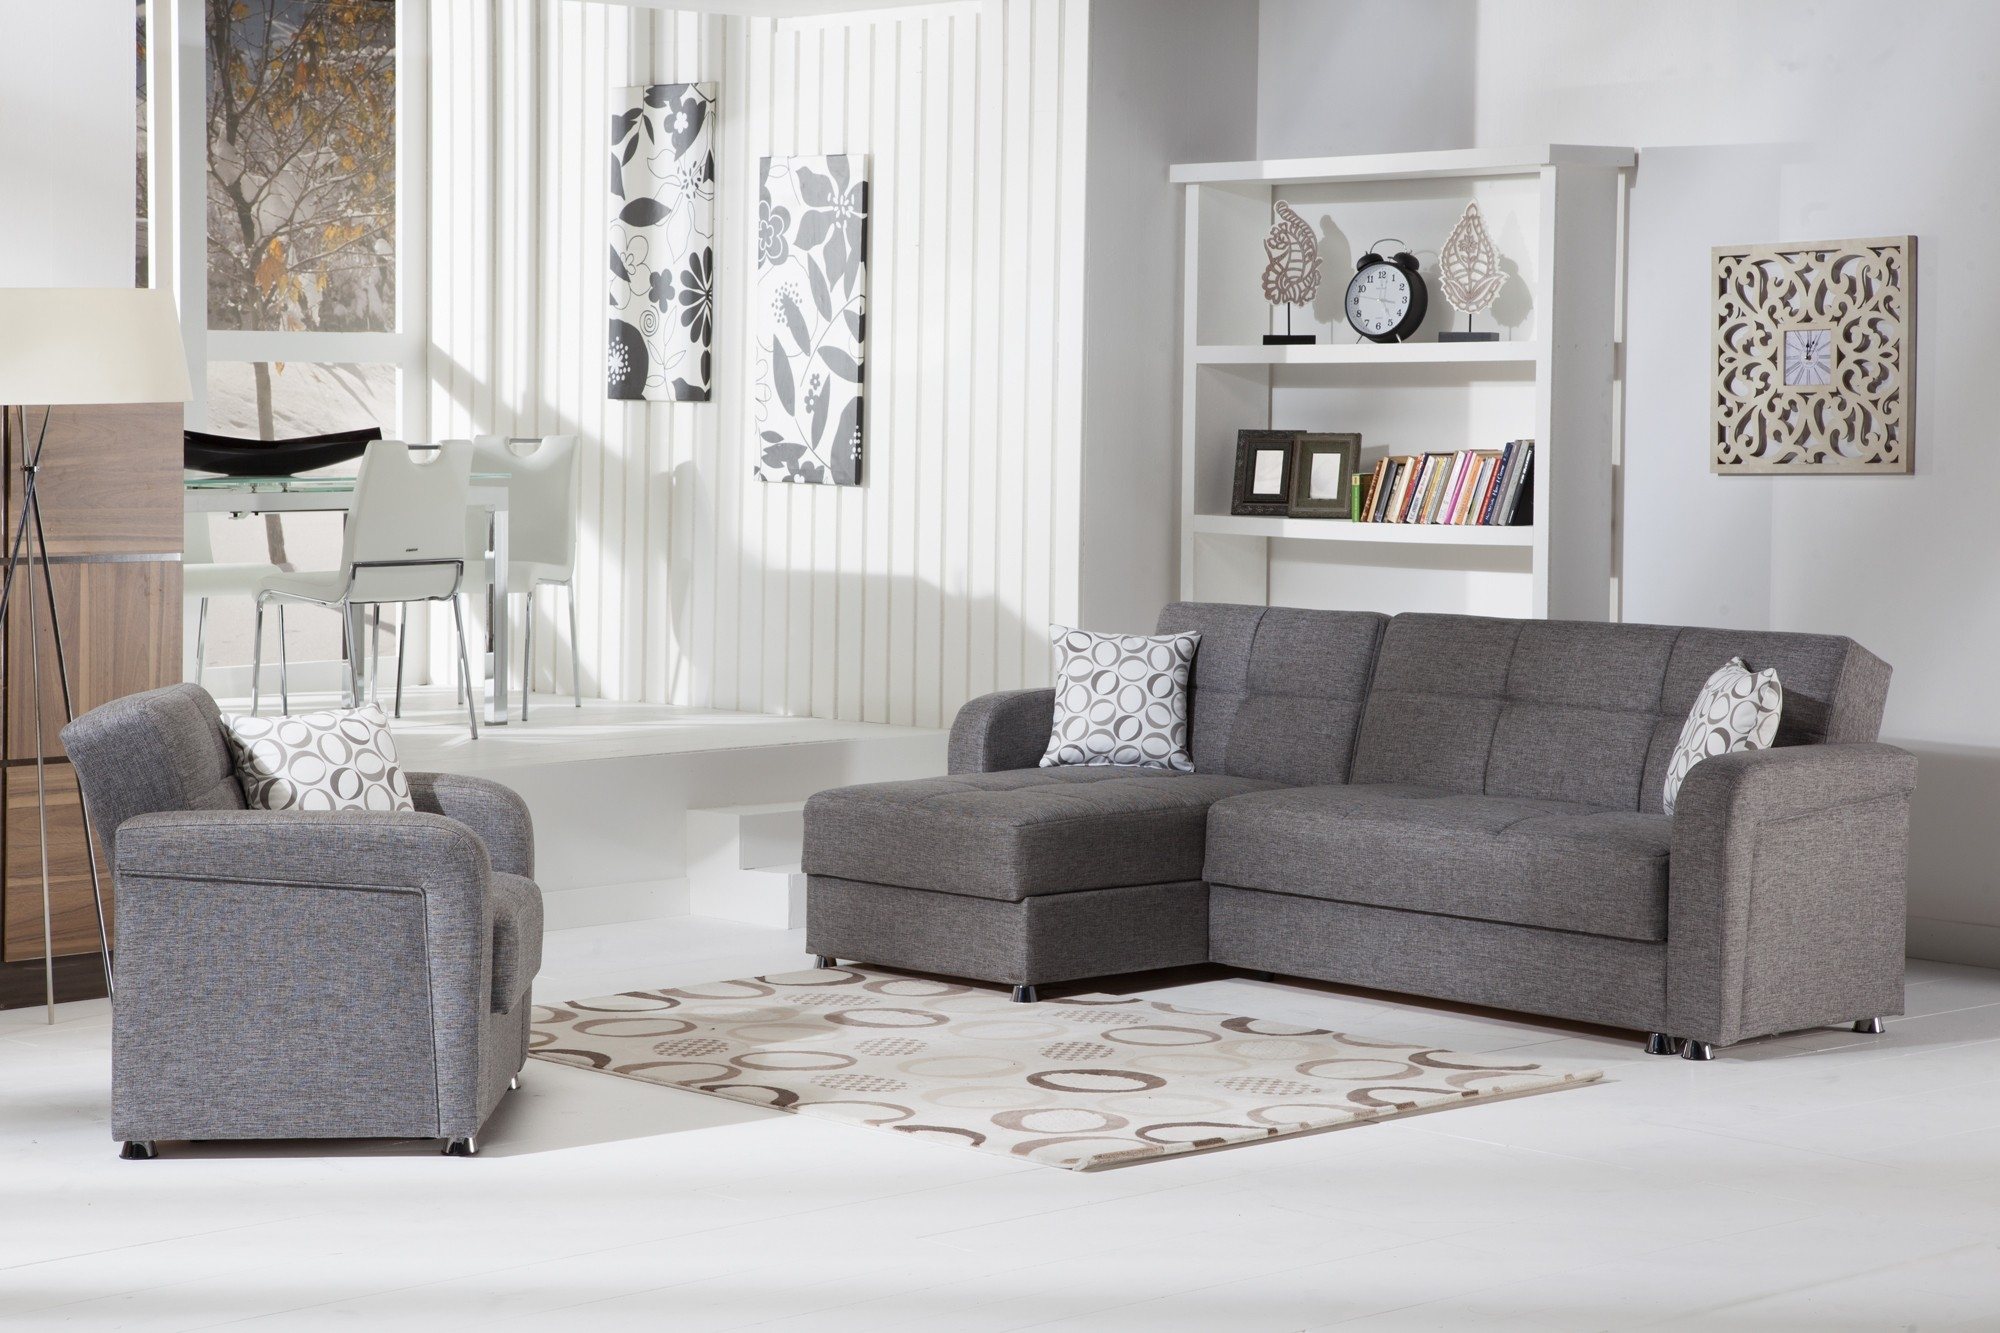 Vision Convertible Sectional Sofa In Diego Grey Istikbal With Convertible Sectional Sofas (#12 of 12)